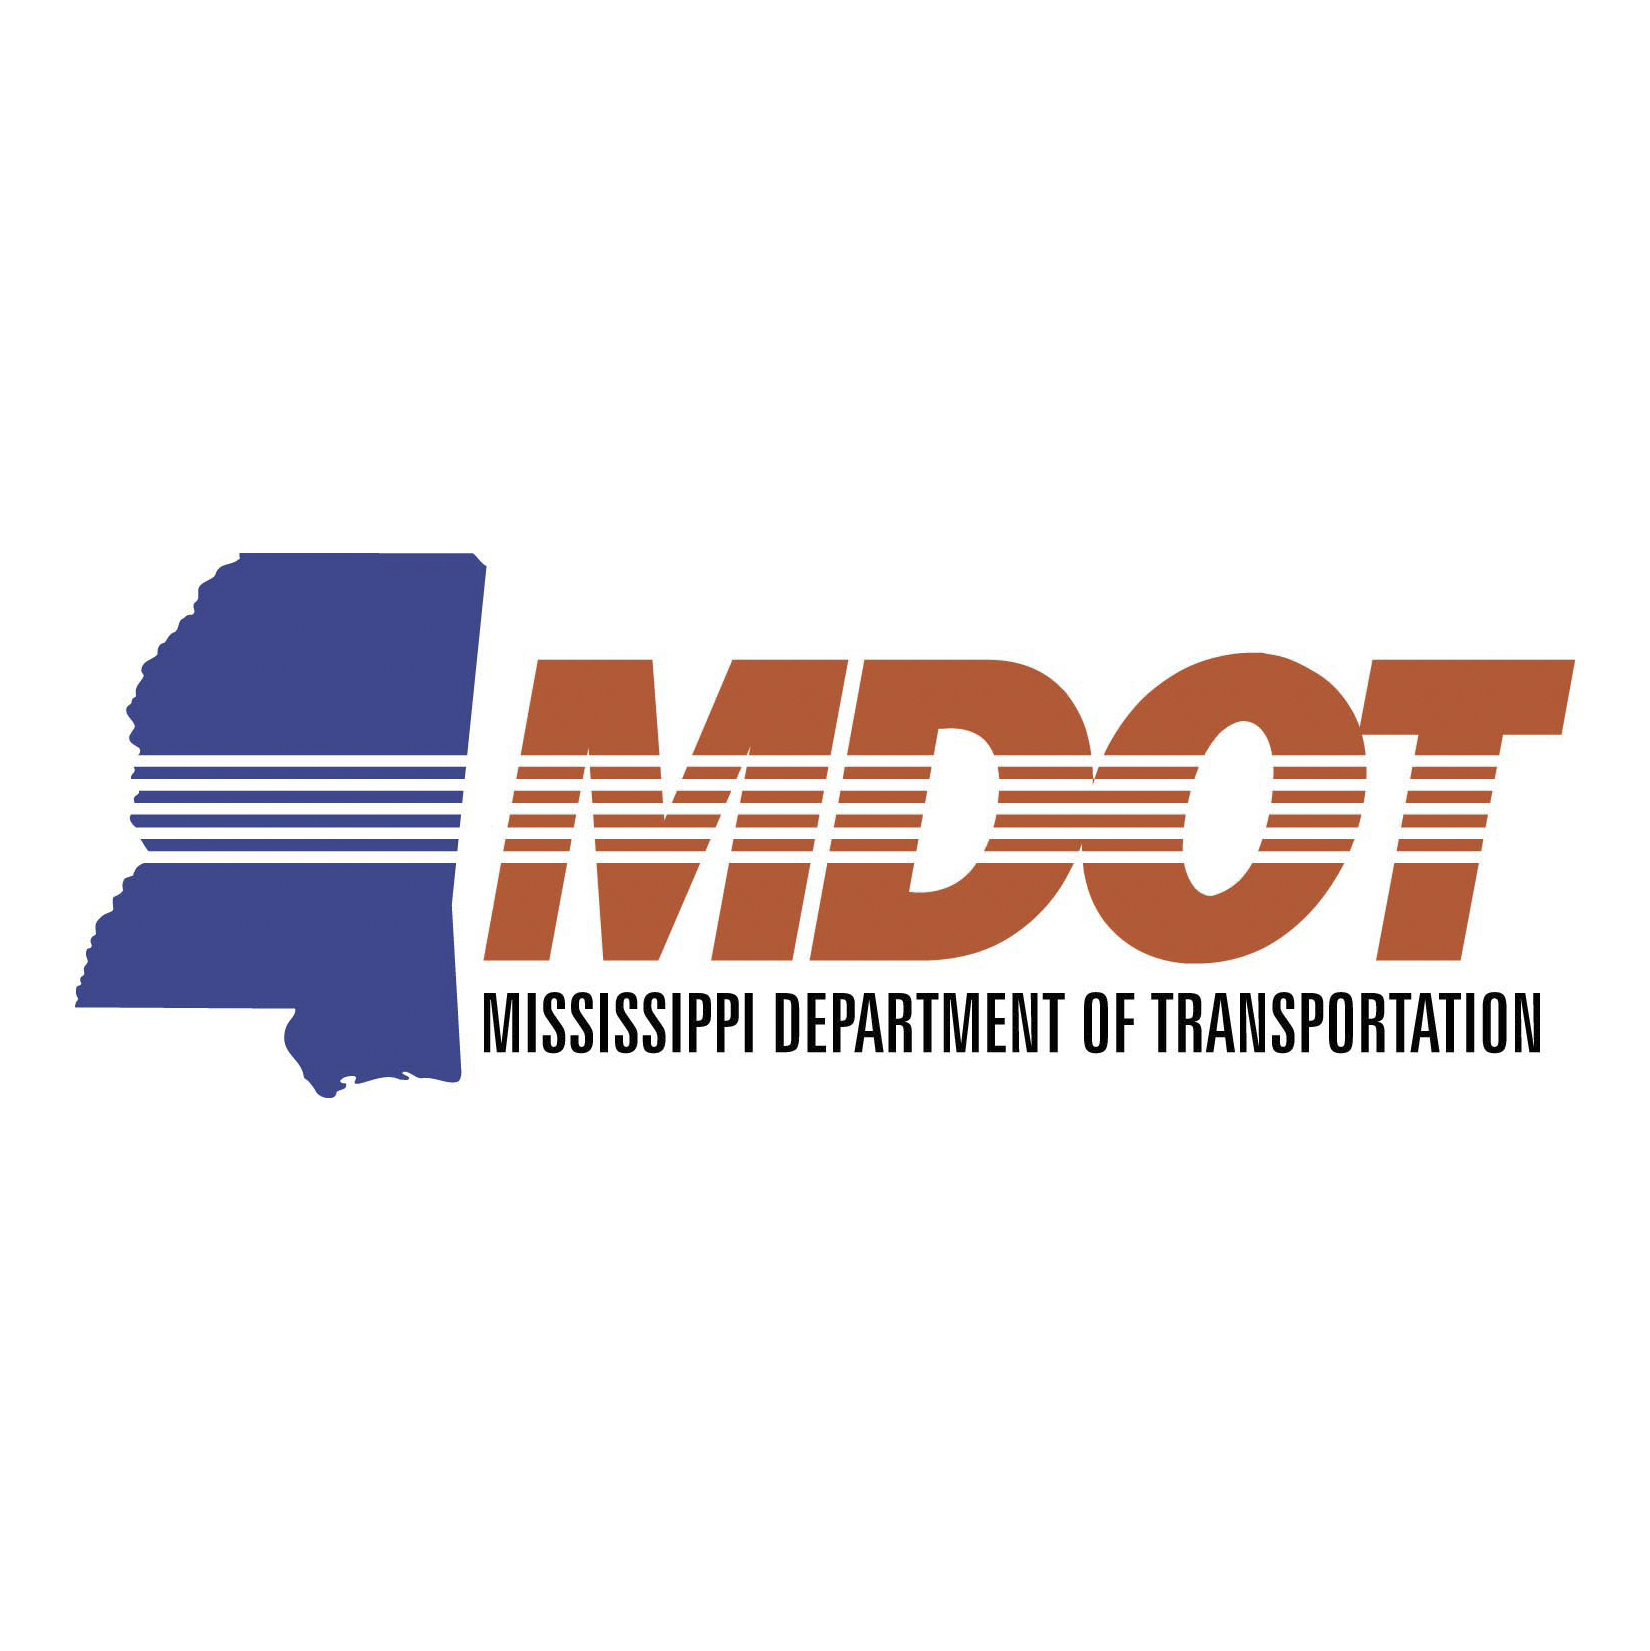 mdot_logo_color_with_text copy